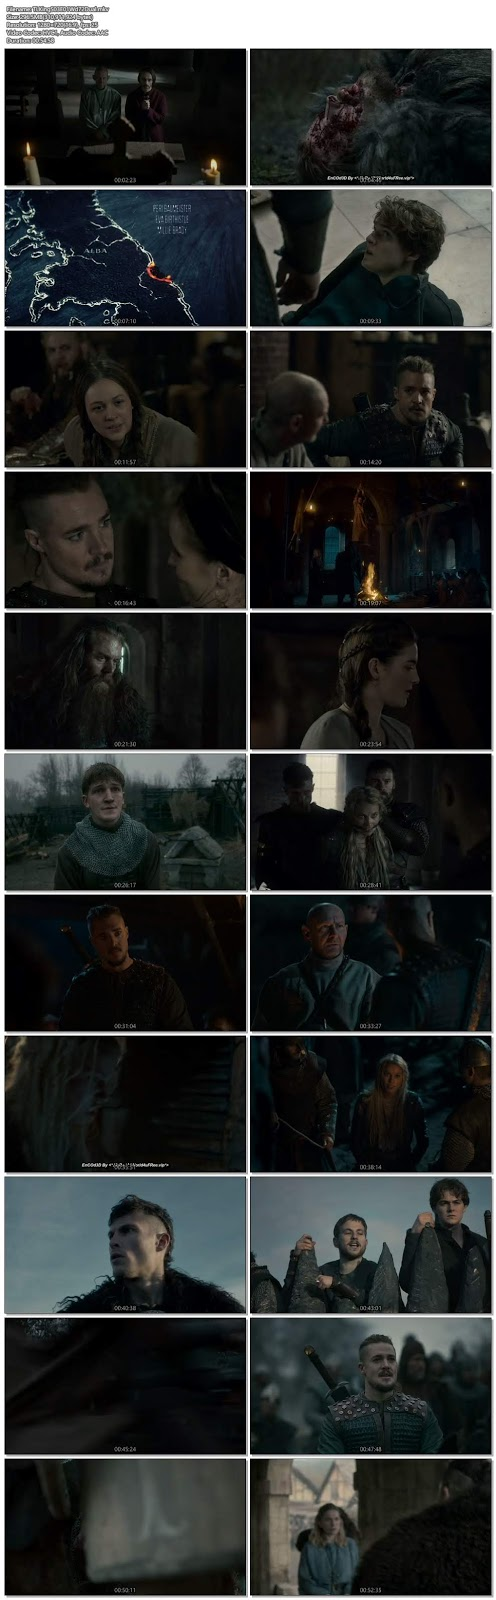 The Last Kingdom S03 Dual Audio Hindi Dubbed Complete (Season 3 ) 720p HD WEB-DL [ Hindi – English ] COMPLETE Series | HEVC x265 | All Episode | Index | Dubbed in Hindi | Free Download